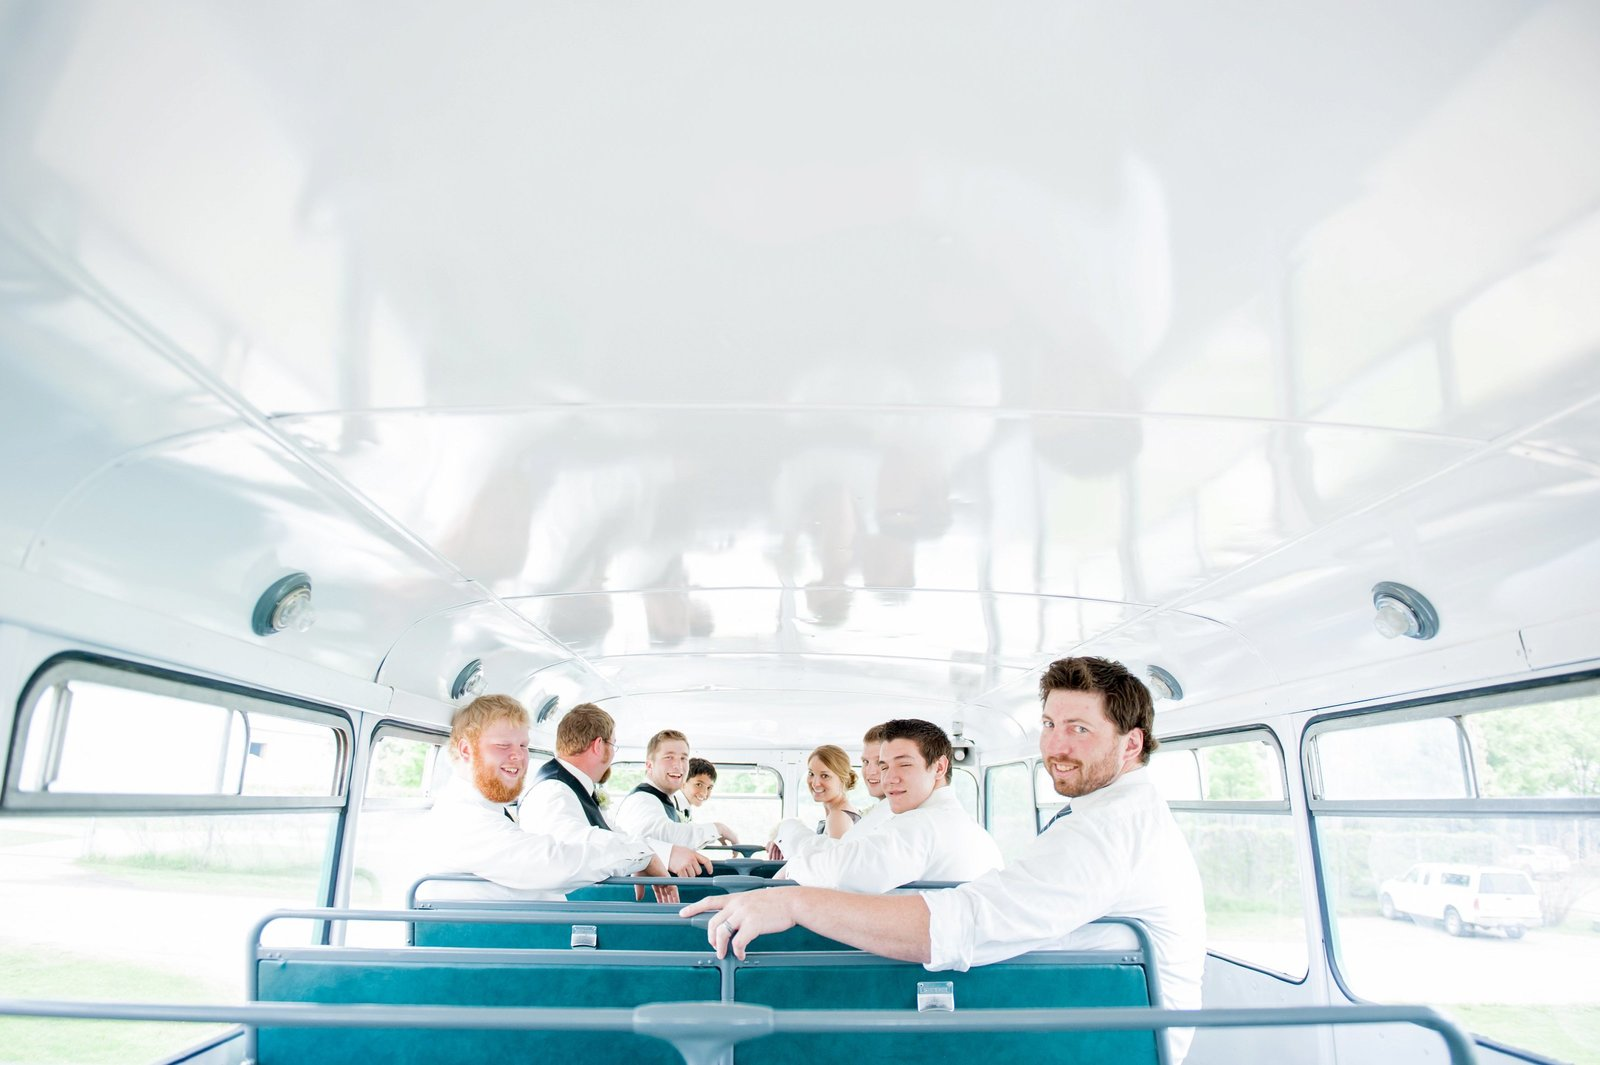 Wahpeton and Fargo party bus double decker, wedding party images by Kris Kandel